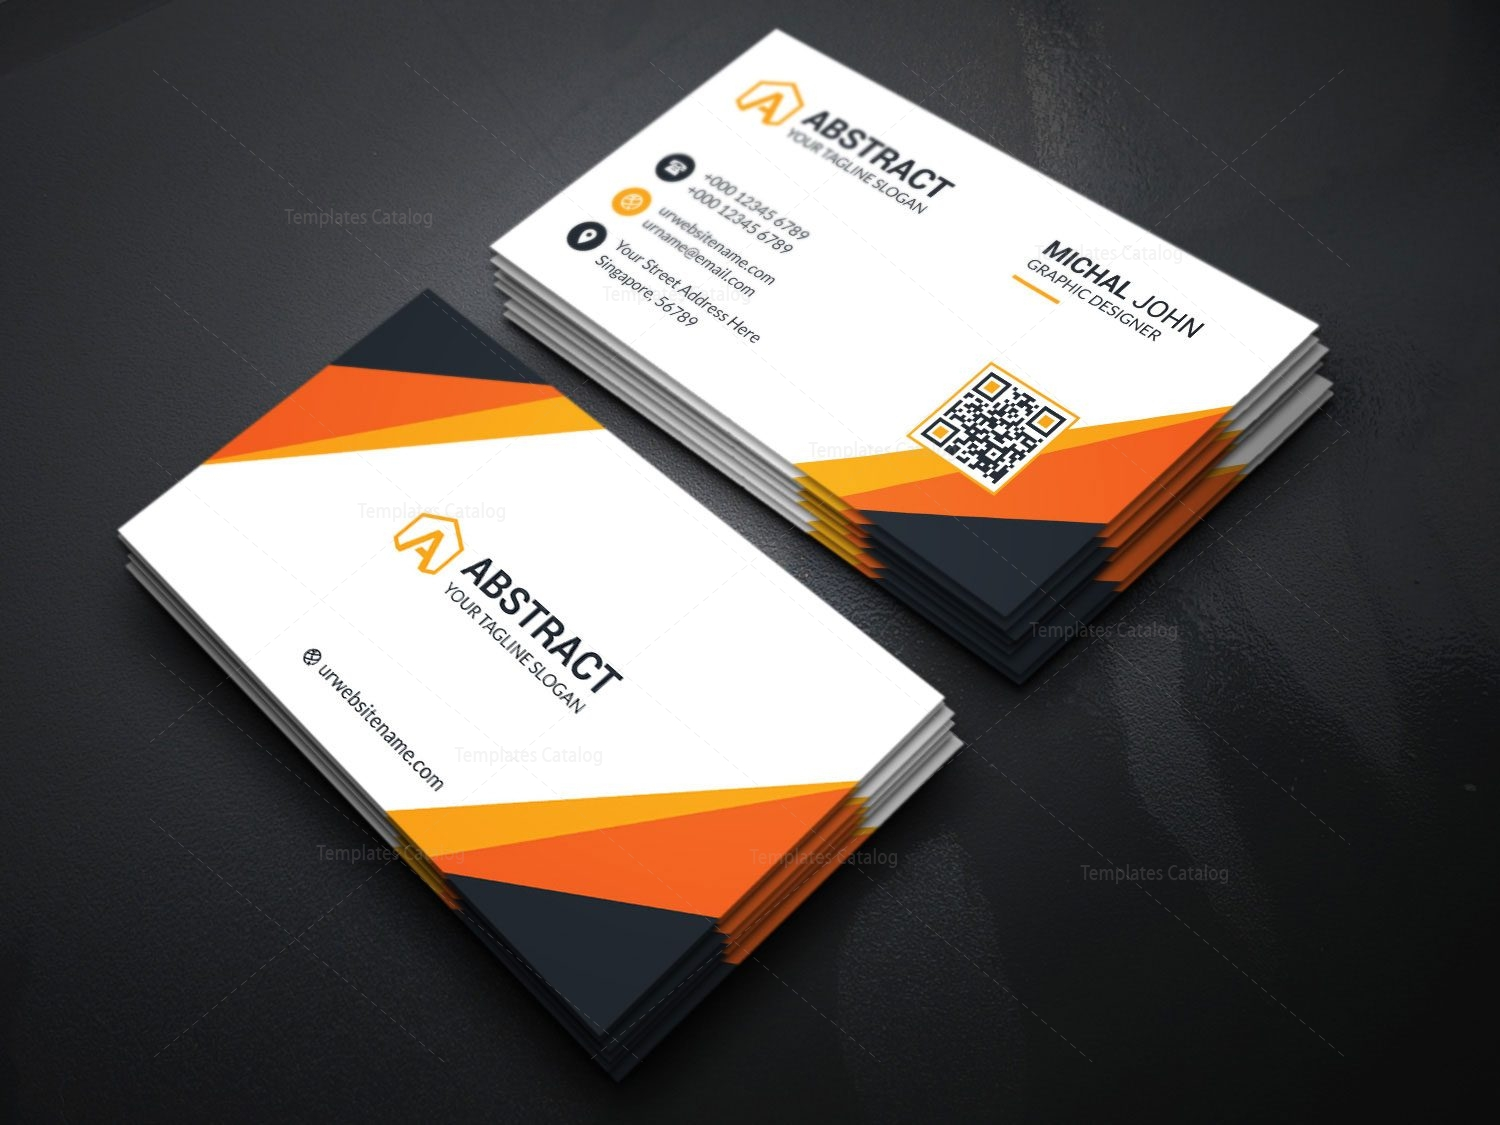 Visiting card template for companies 000175 template catalog visiting card template for companies 3 cheaphphosting